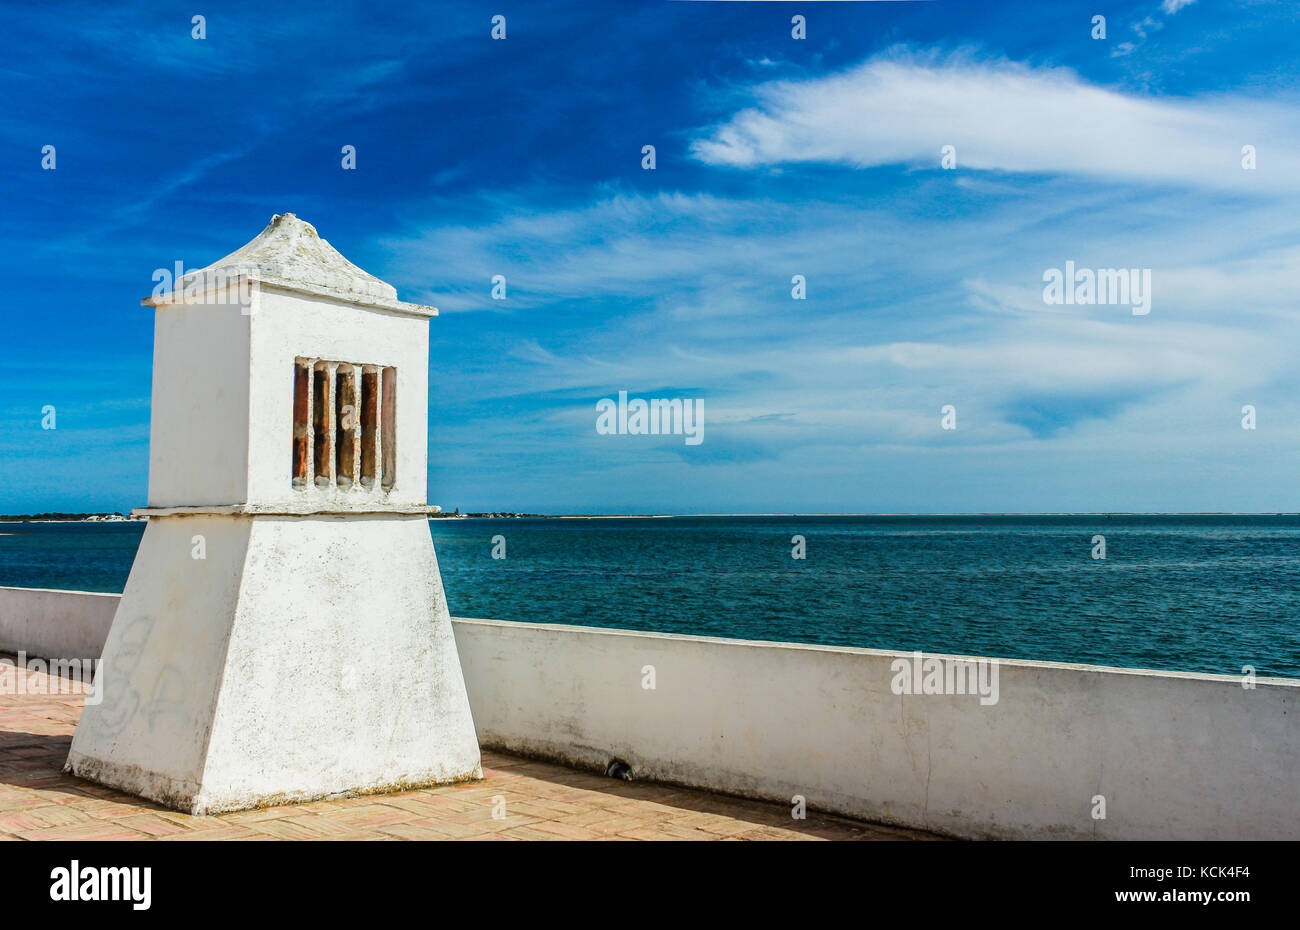 Ria Formosa, Algarve - Portugal. Architecture with Moorish influences. The roof and the chimney are the example - Stock Image